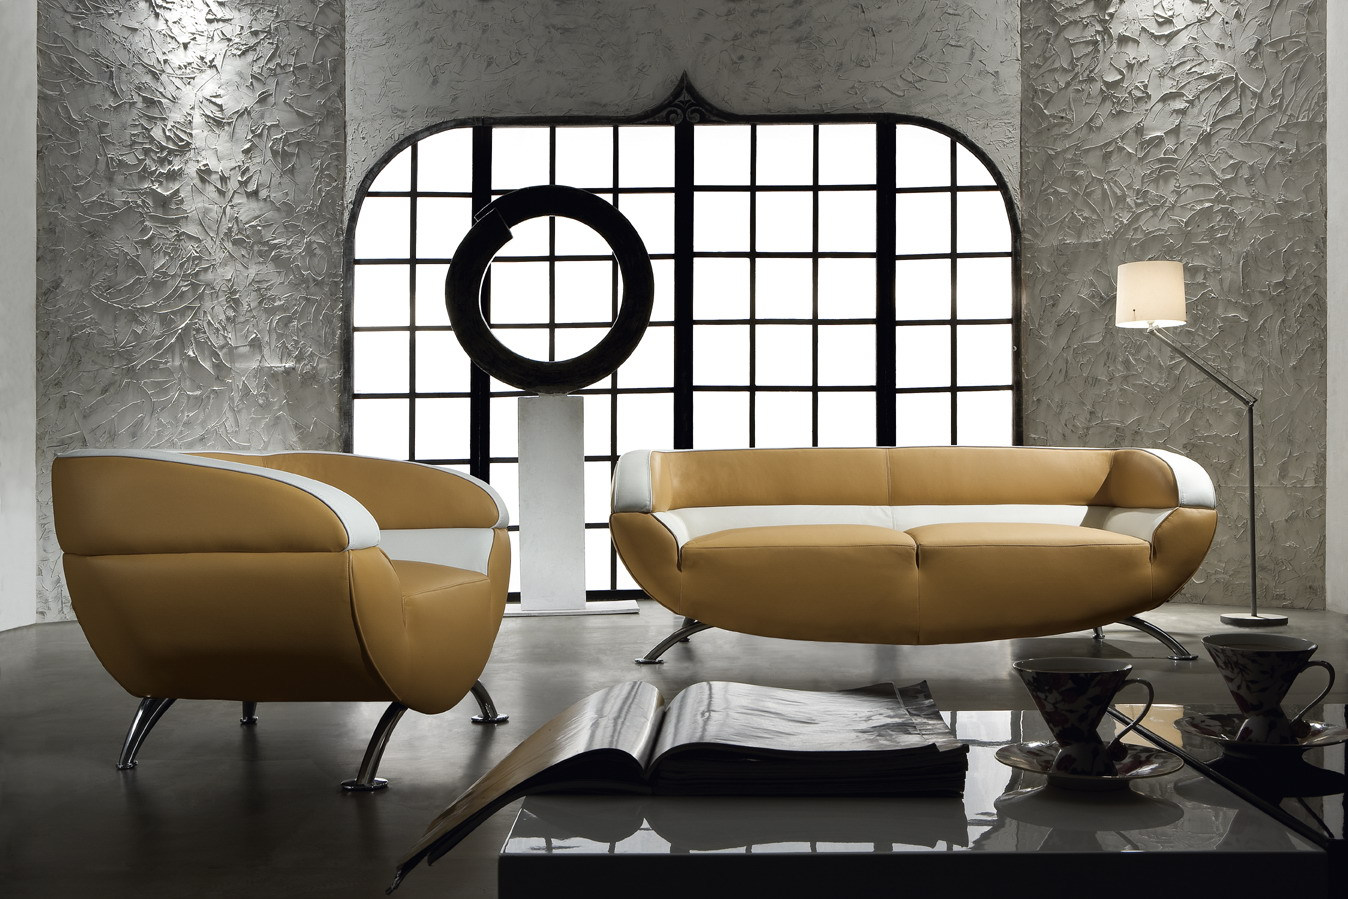 Miss 60 Retro Modern 3 Piece Sofa Set